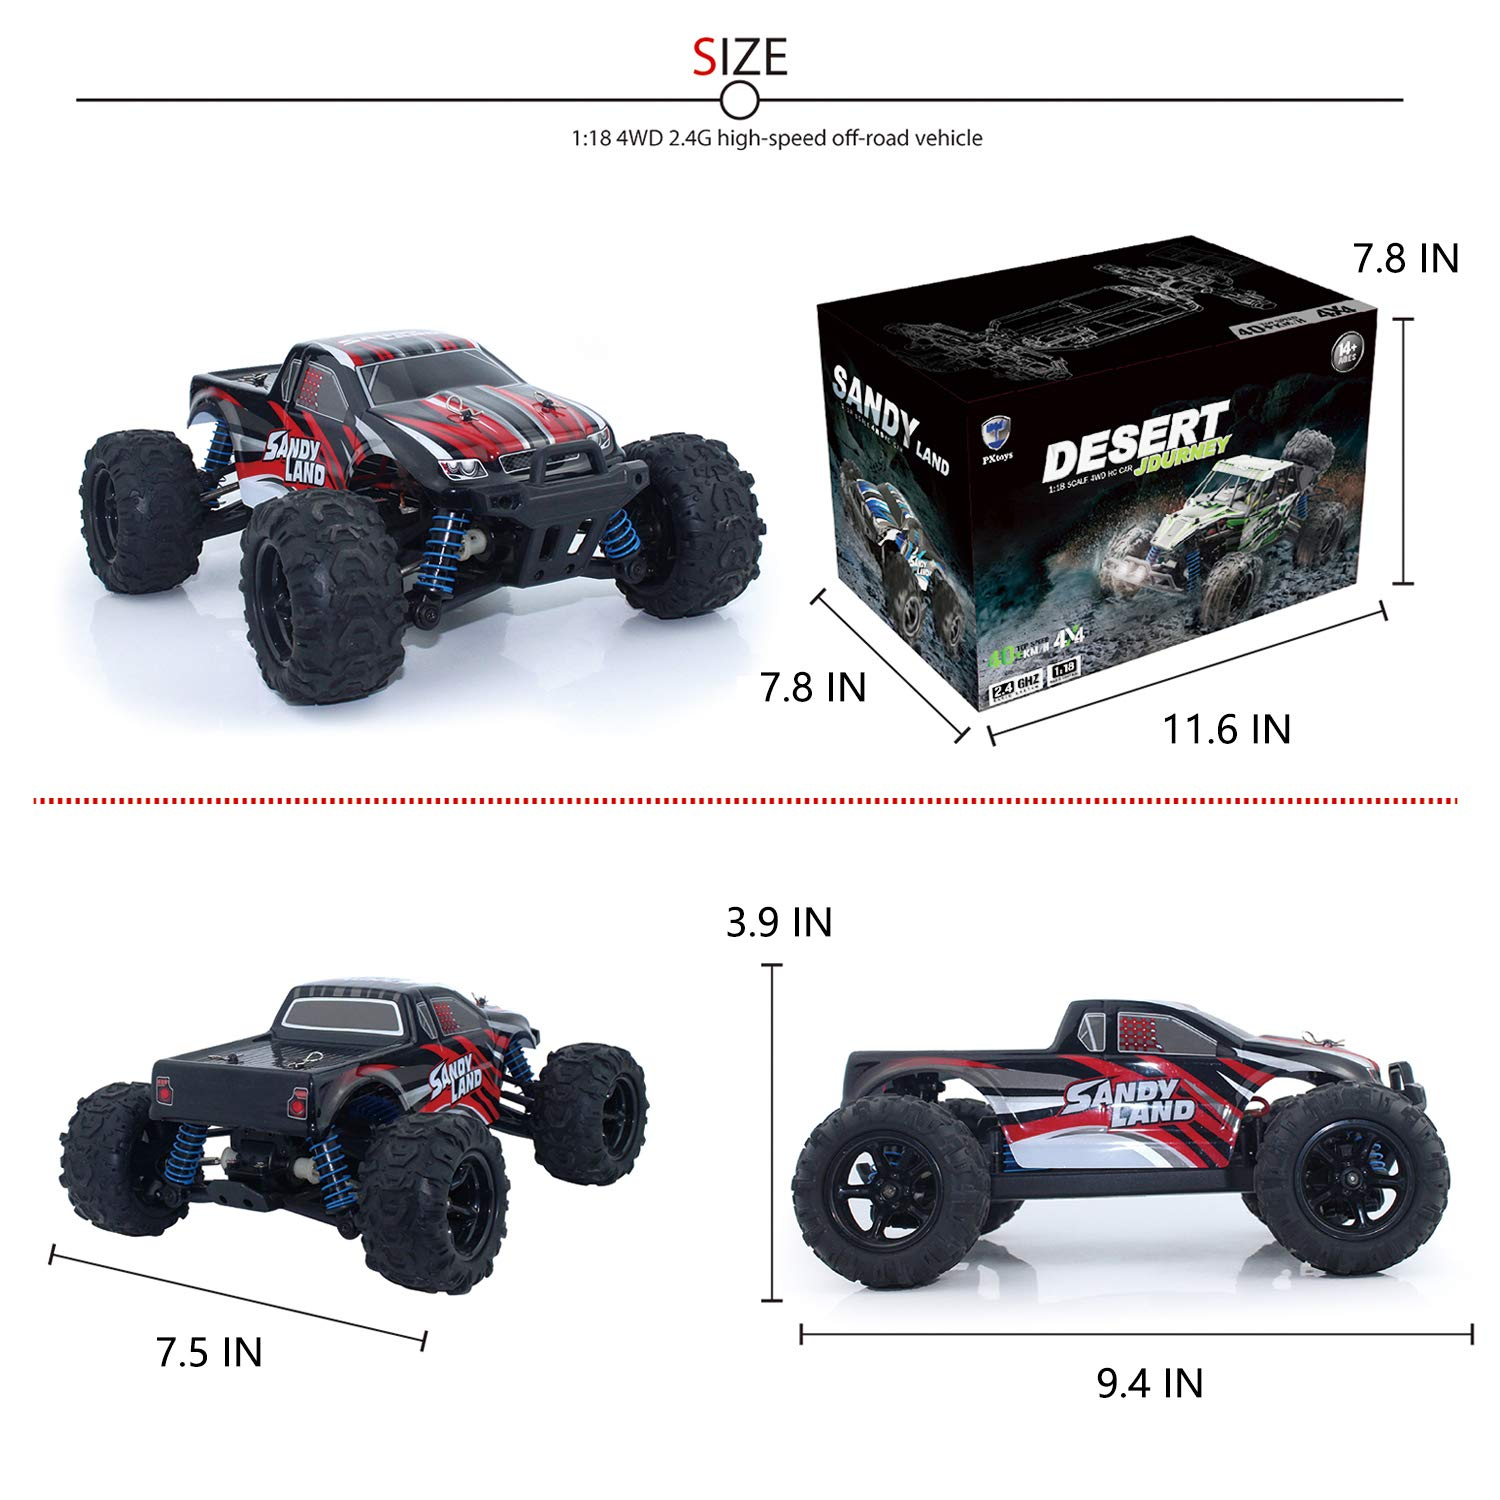 EXERCISE N PLAY RC Car, Remote Control Car, Terrain RC Cars, Electric Remote Control Off Road Monster Truck, 1:18 Scale 2.4Ghz Radio 4WD Fast 30+ MPH RC Car, with 2 Rechargeable Batteries by EXERCISE N PLAY (Image #6)